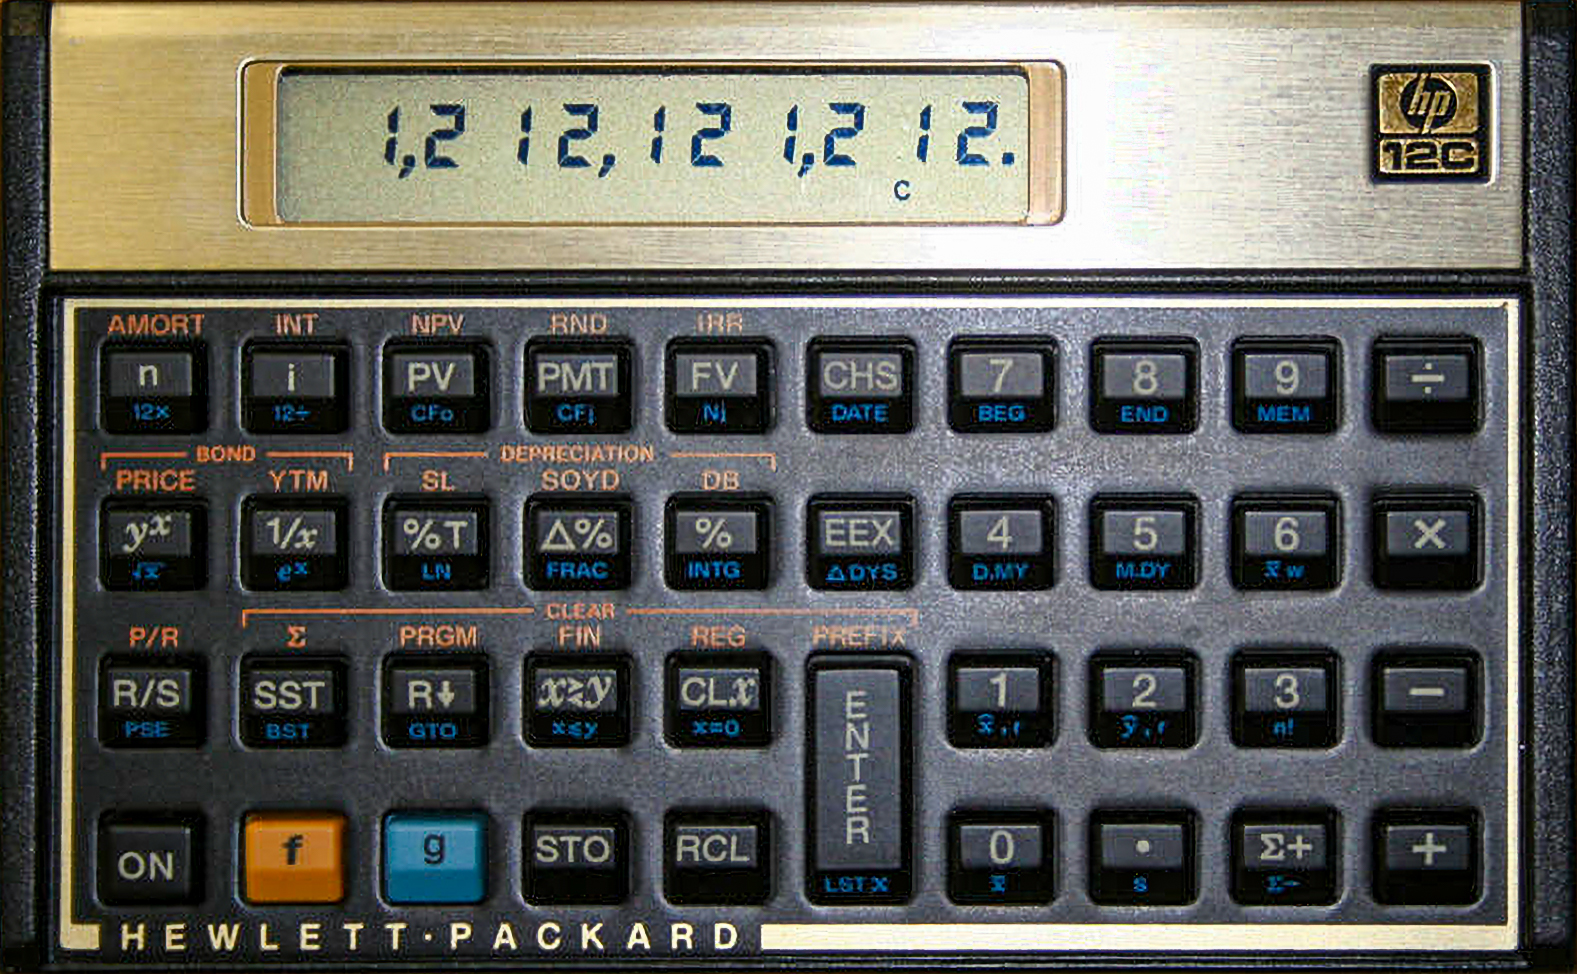 manual hp 12c calculator